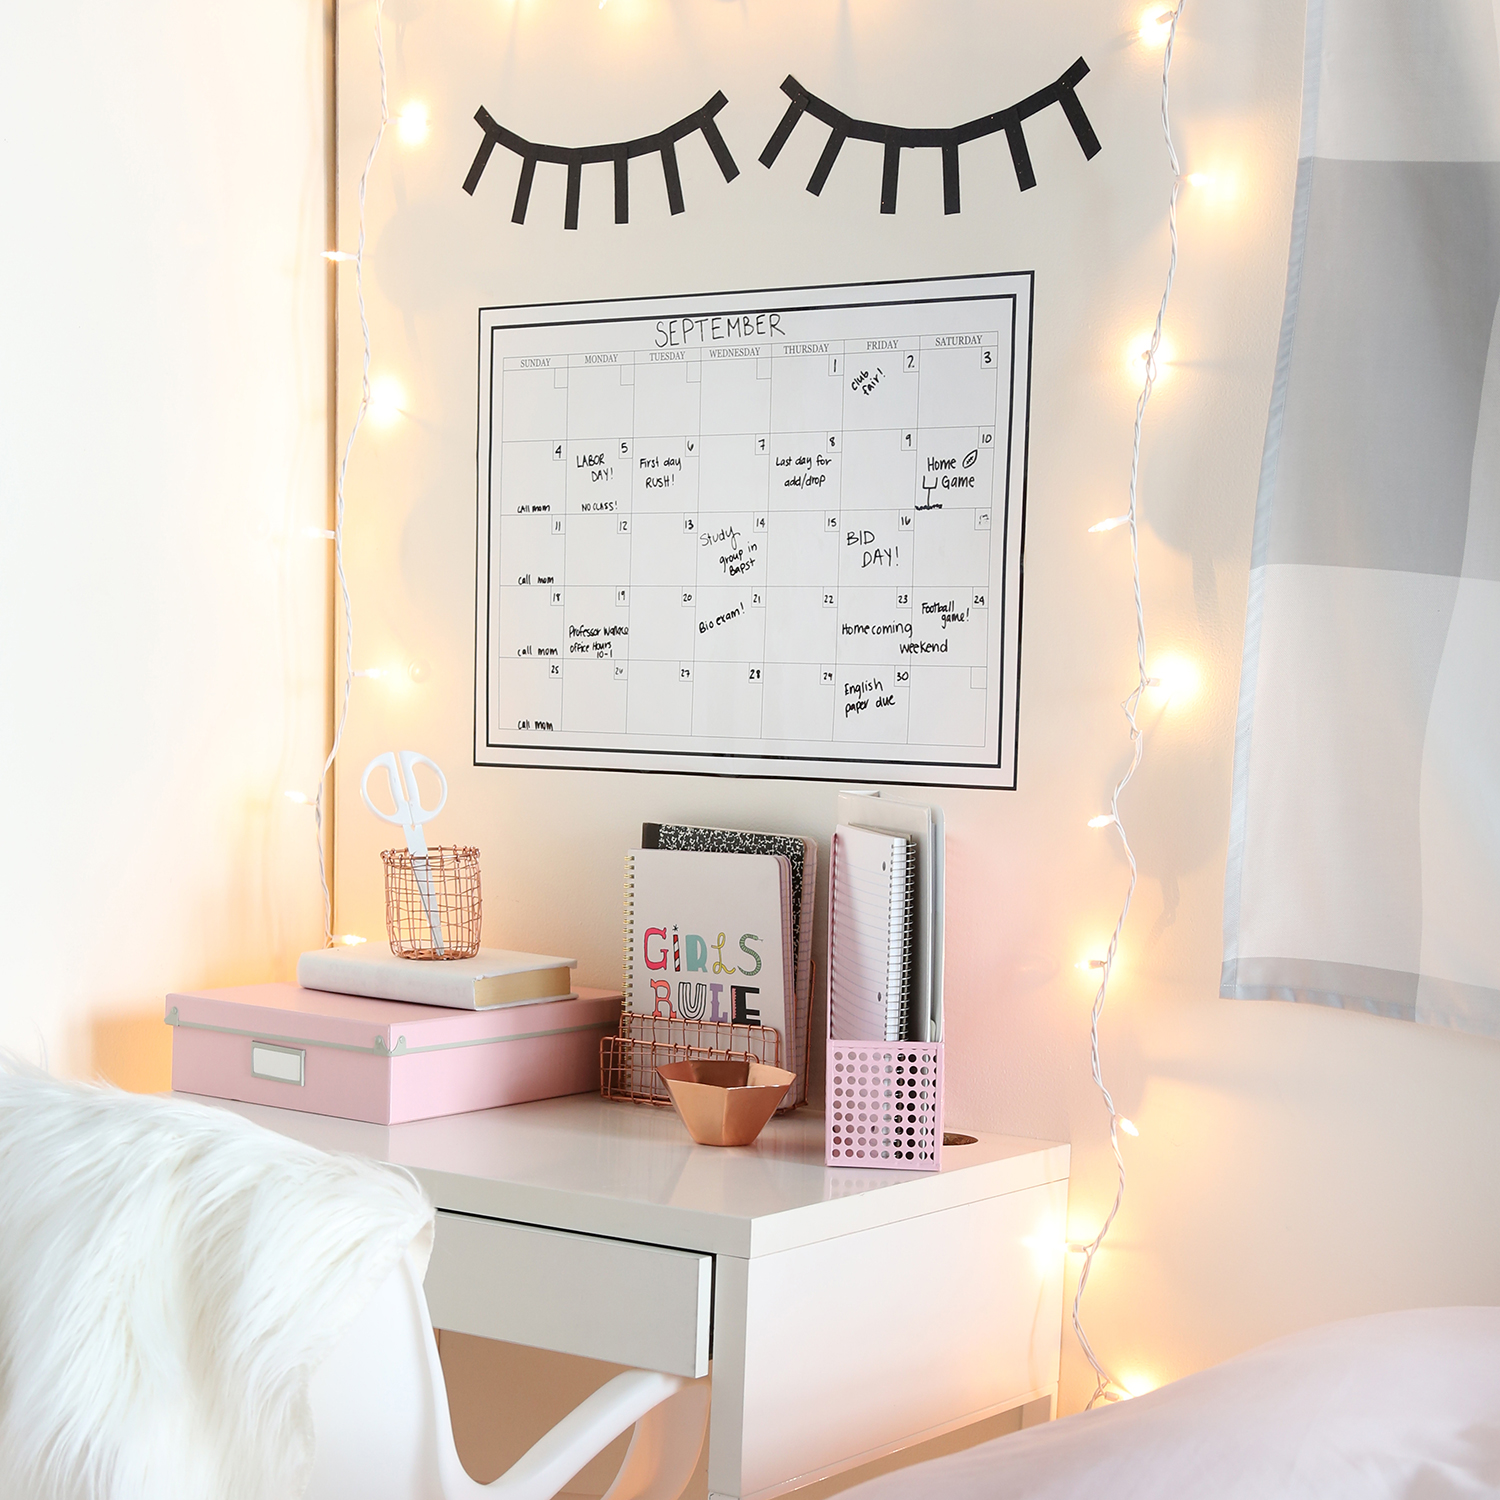 Bedroom Desk Tumblr 5 Easy Ways To Create A Tumblr Room Now Dormify Blog